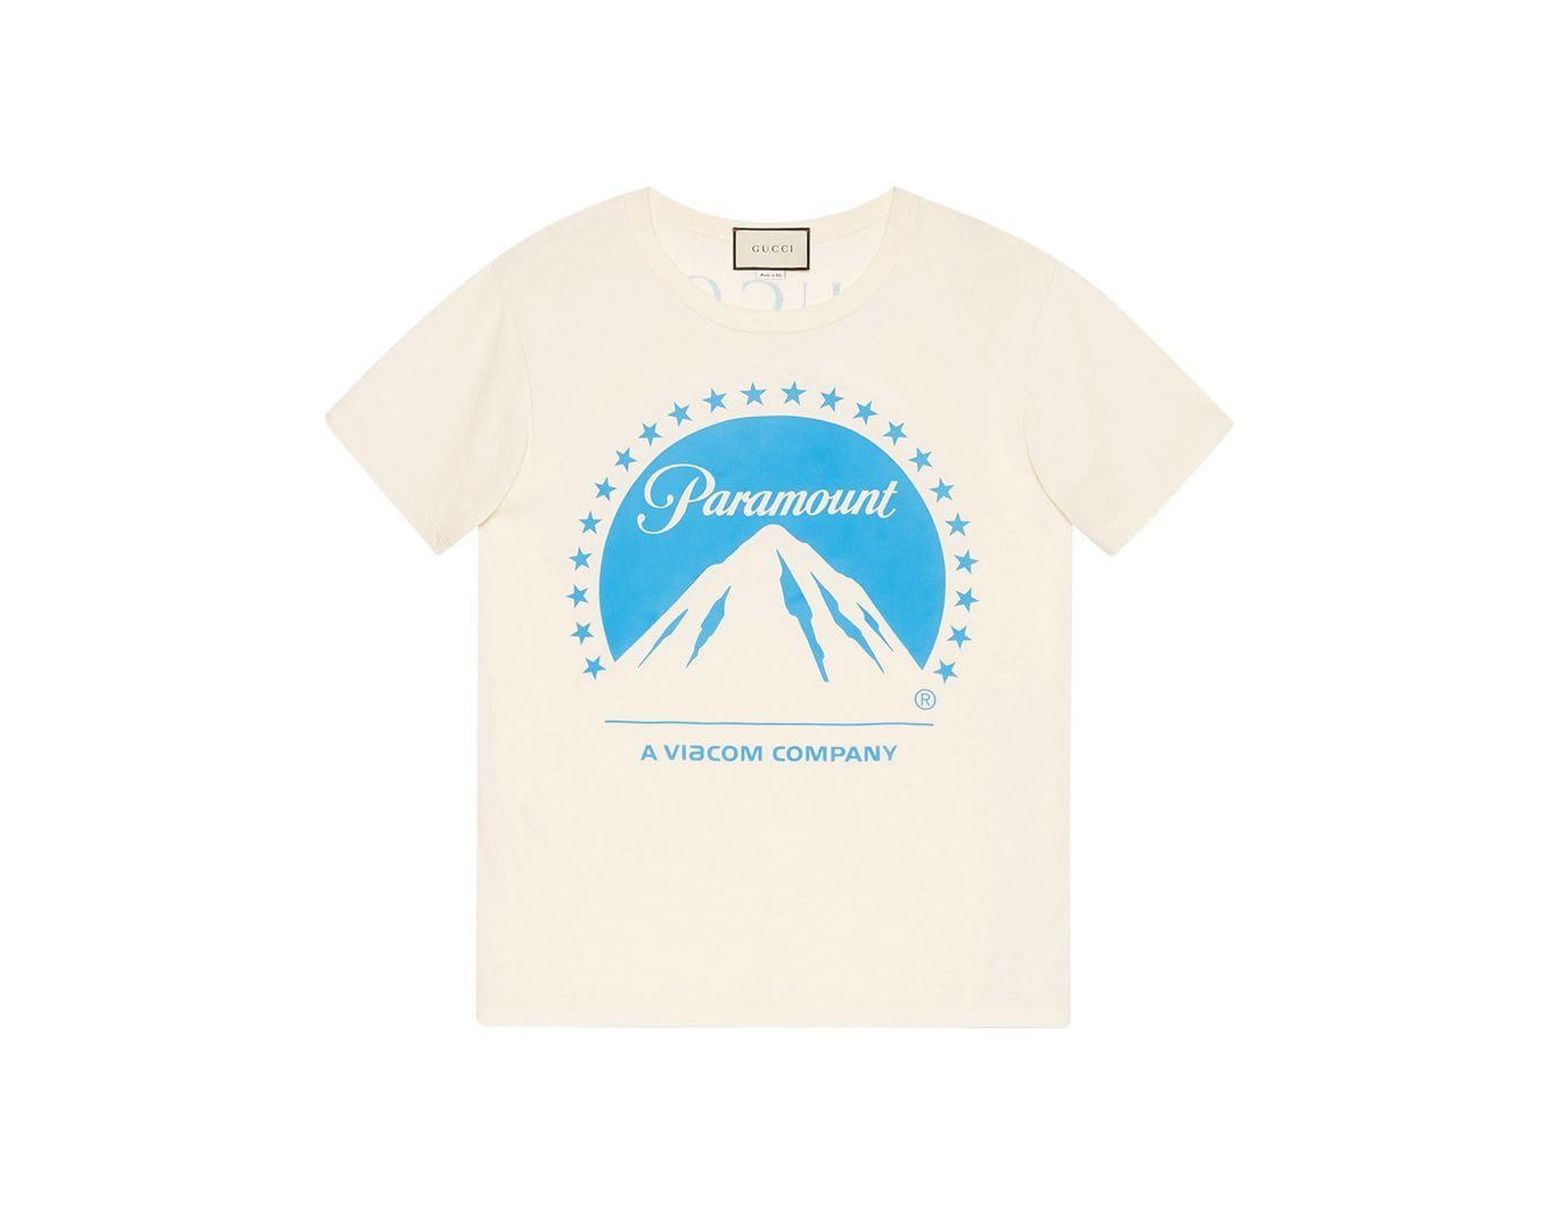 dd811790e Gucci Oversize T-shirt With Paramount Logo in White - Lyst